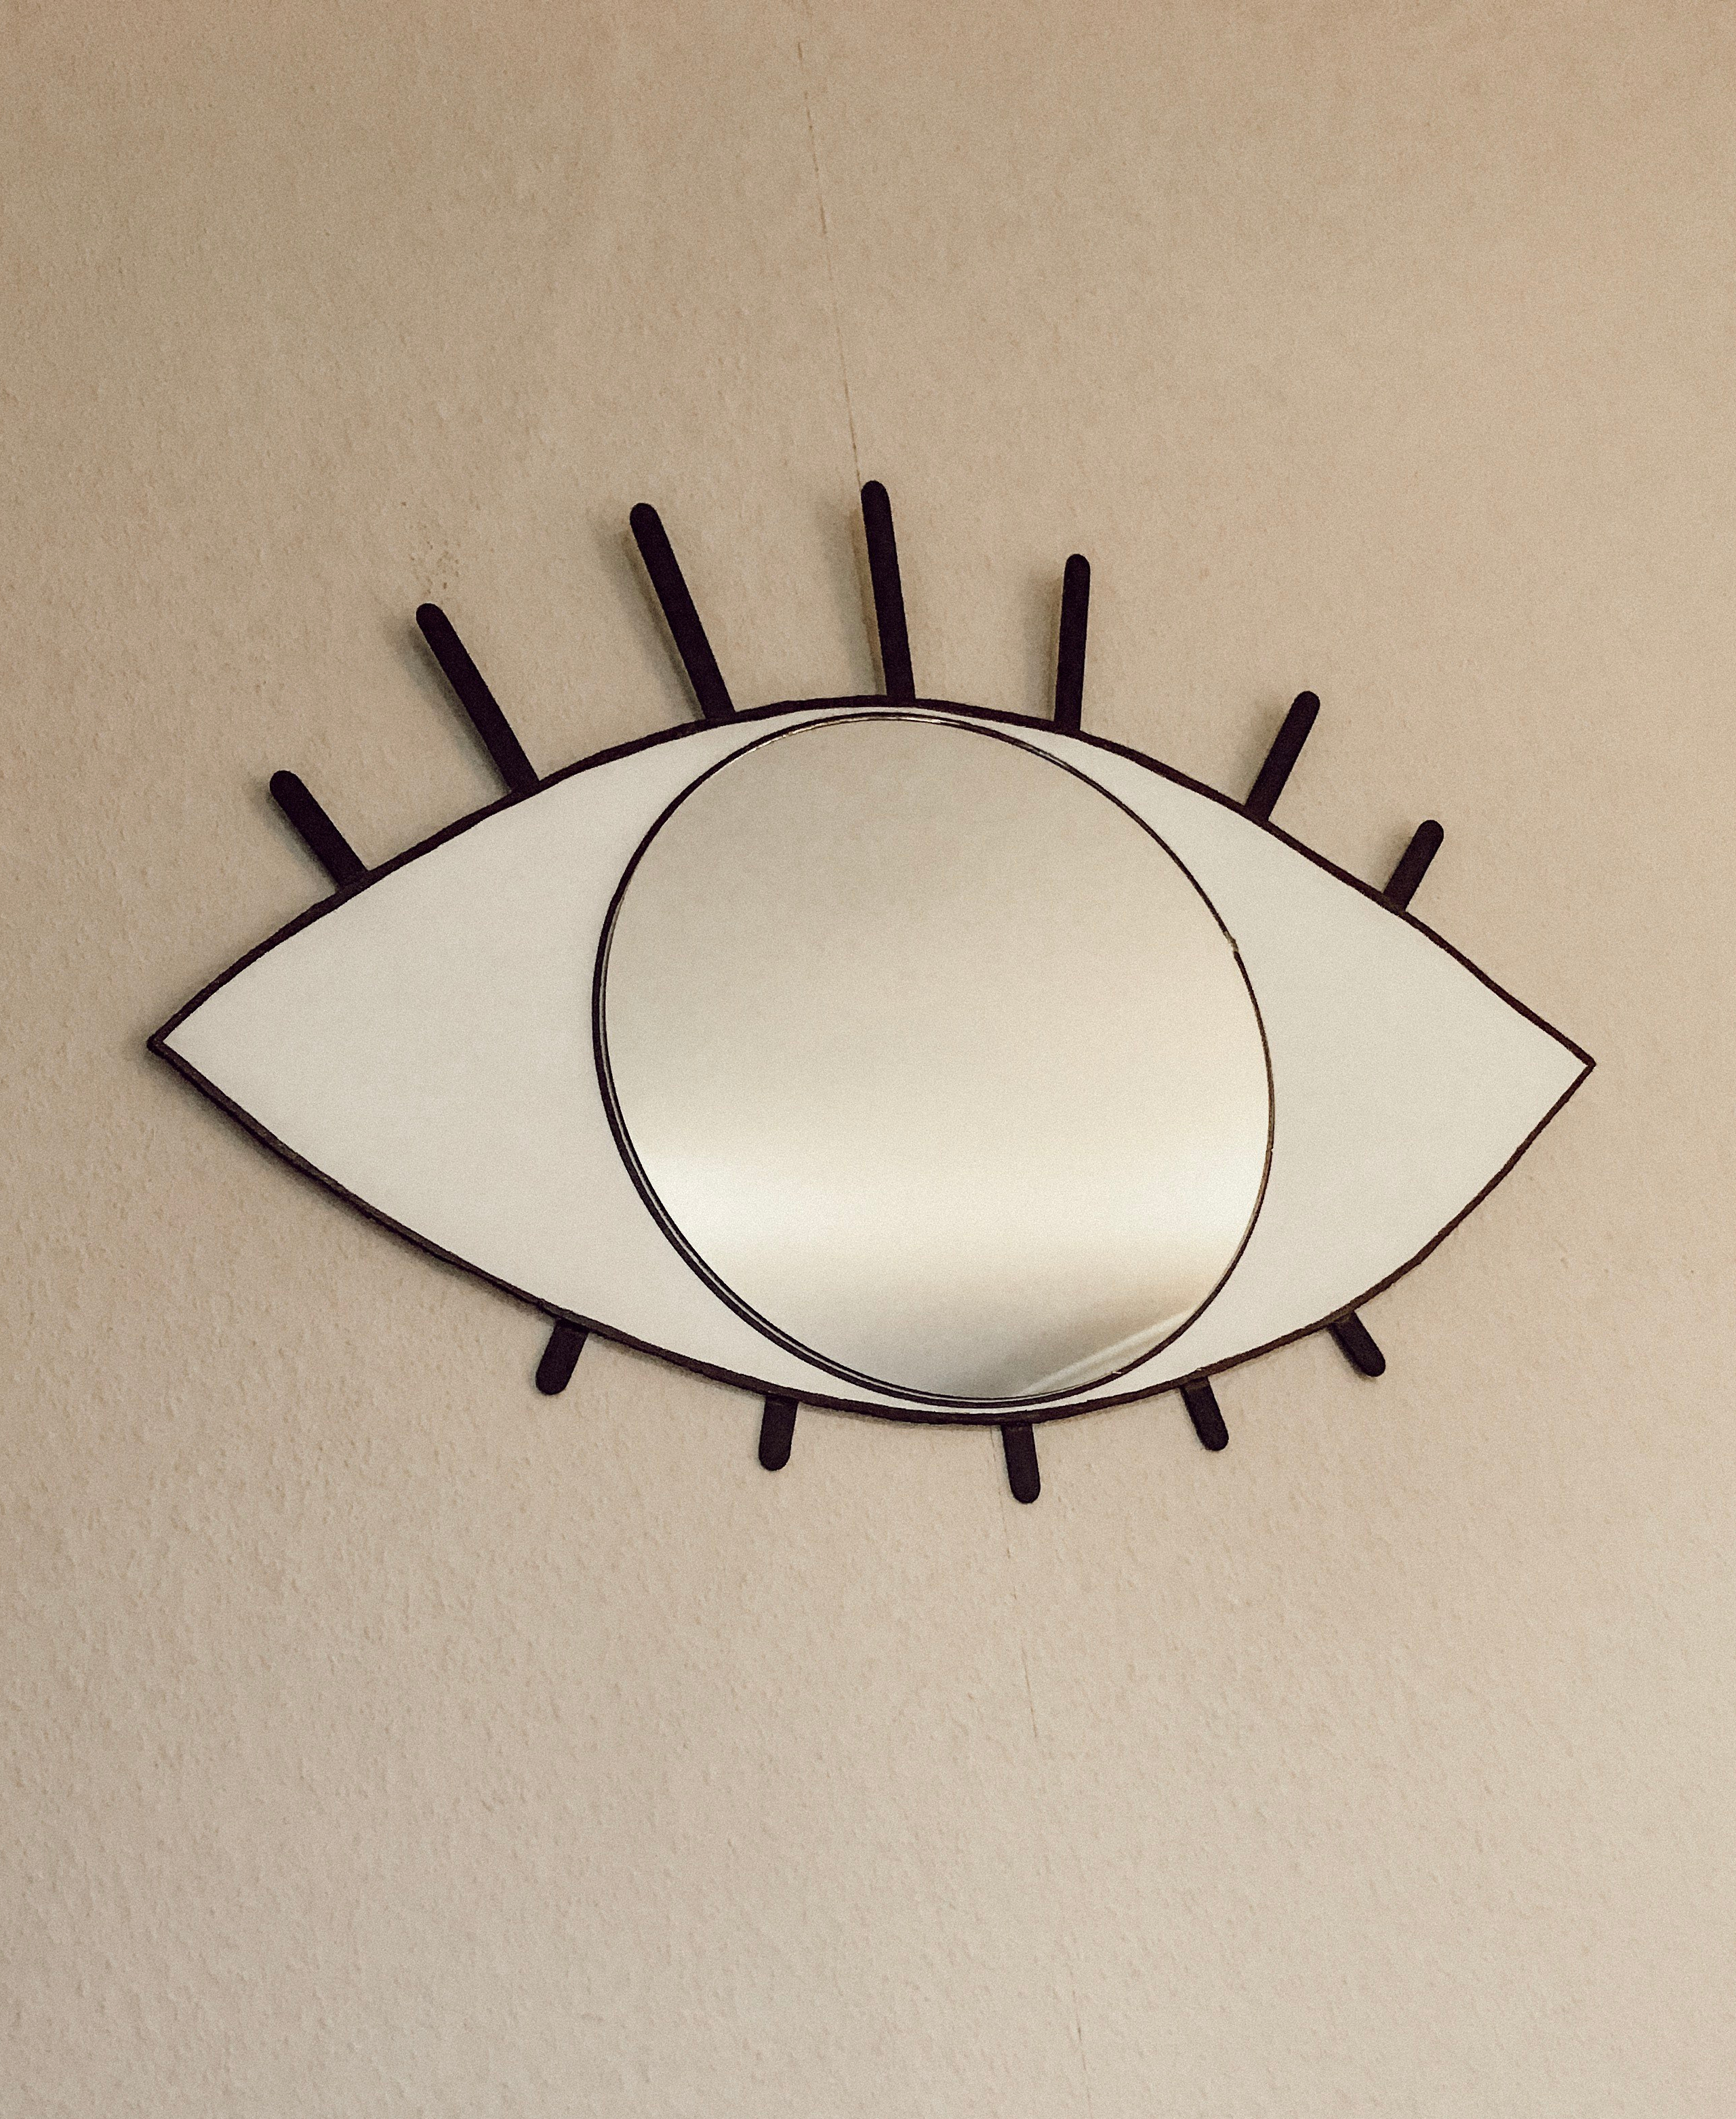 diy cyclopse mirror